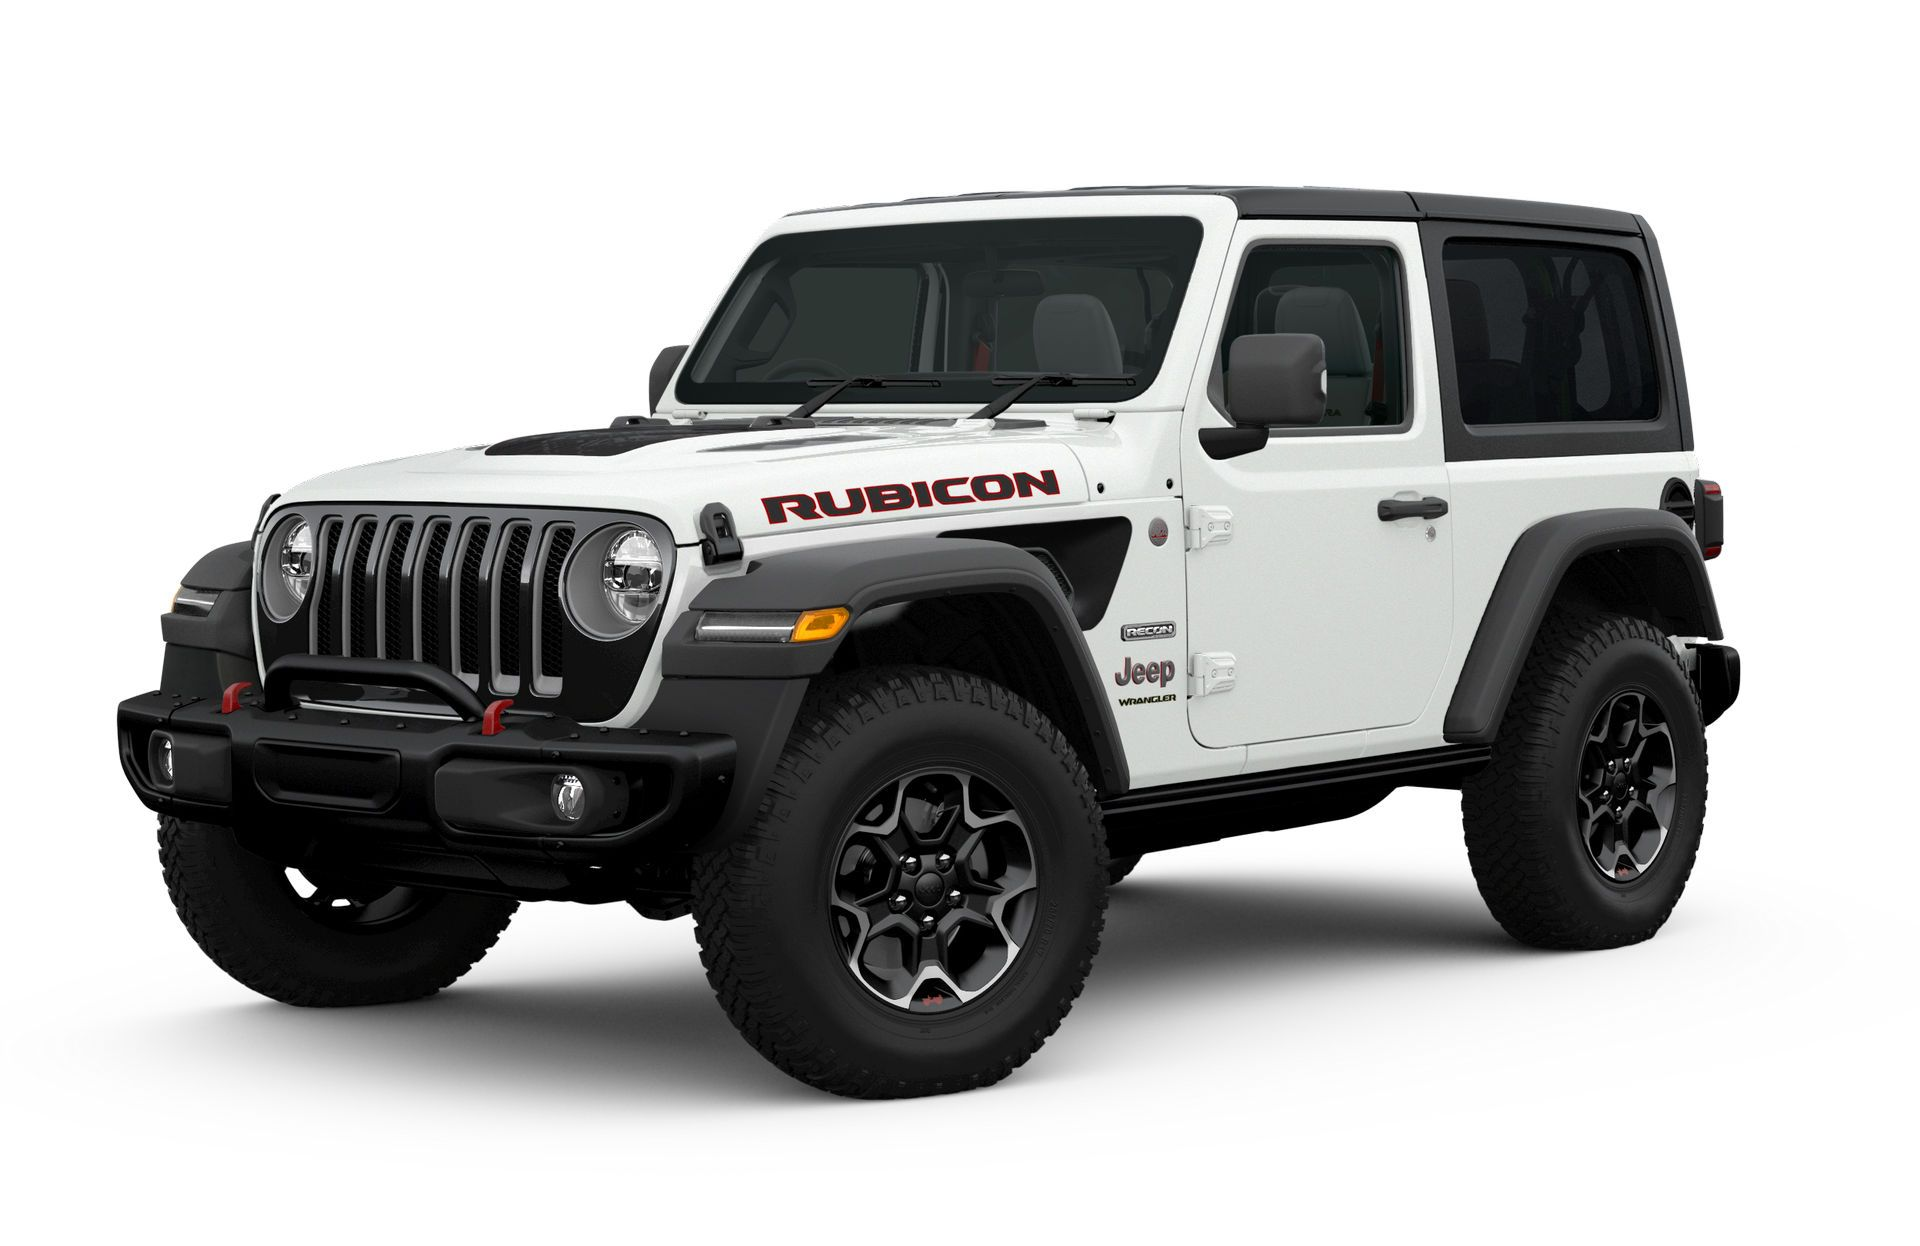 2020 Jeep Wrangler Rubicon Performance and New Engine